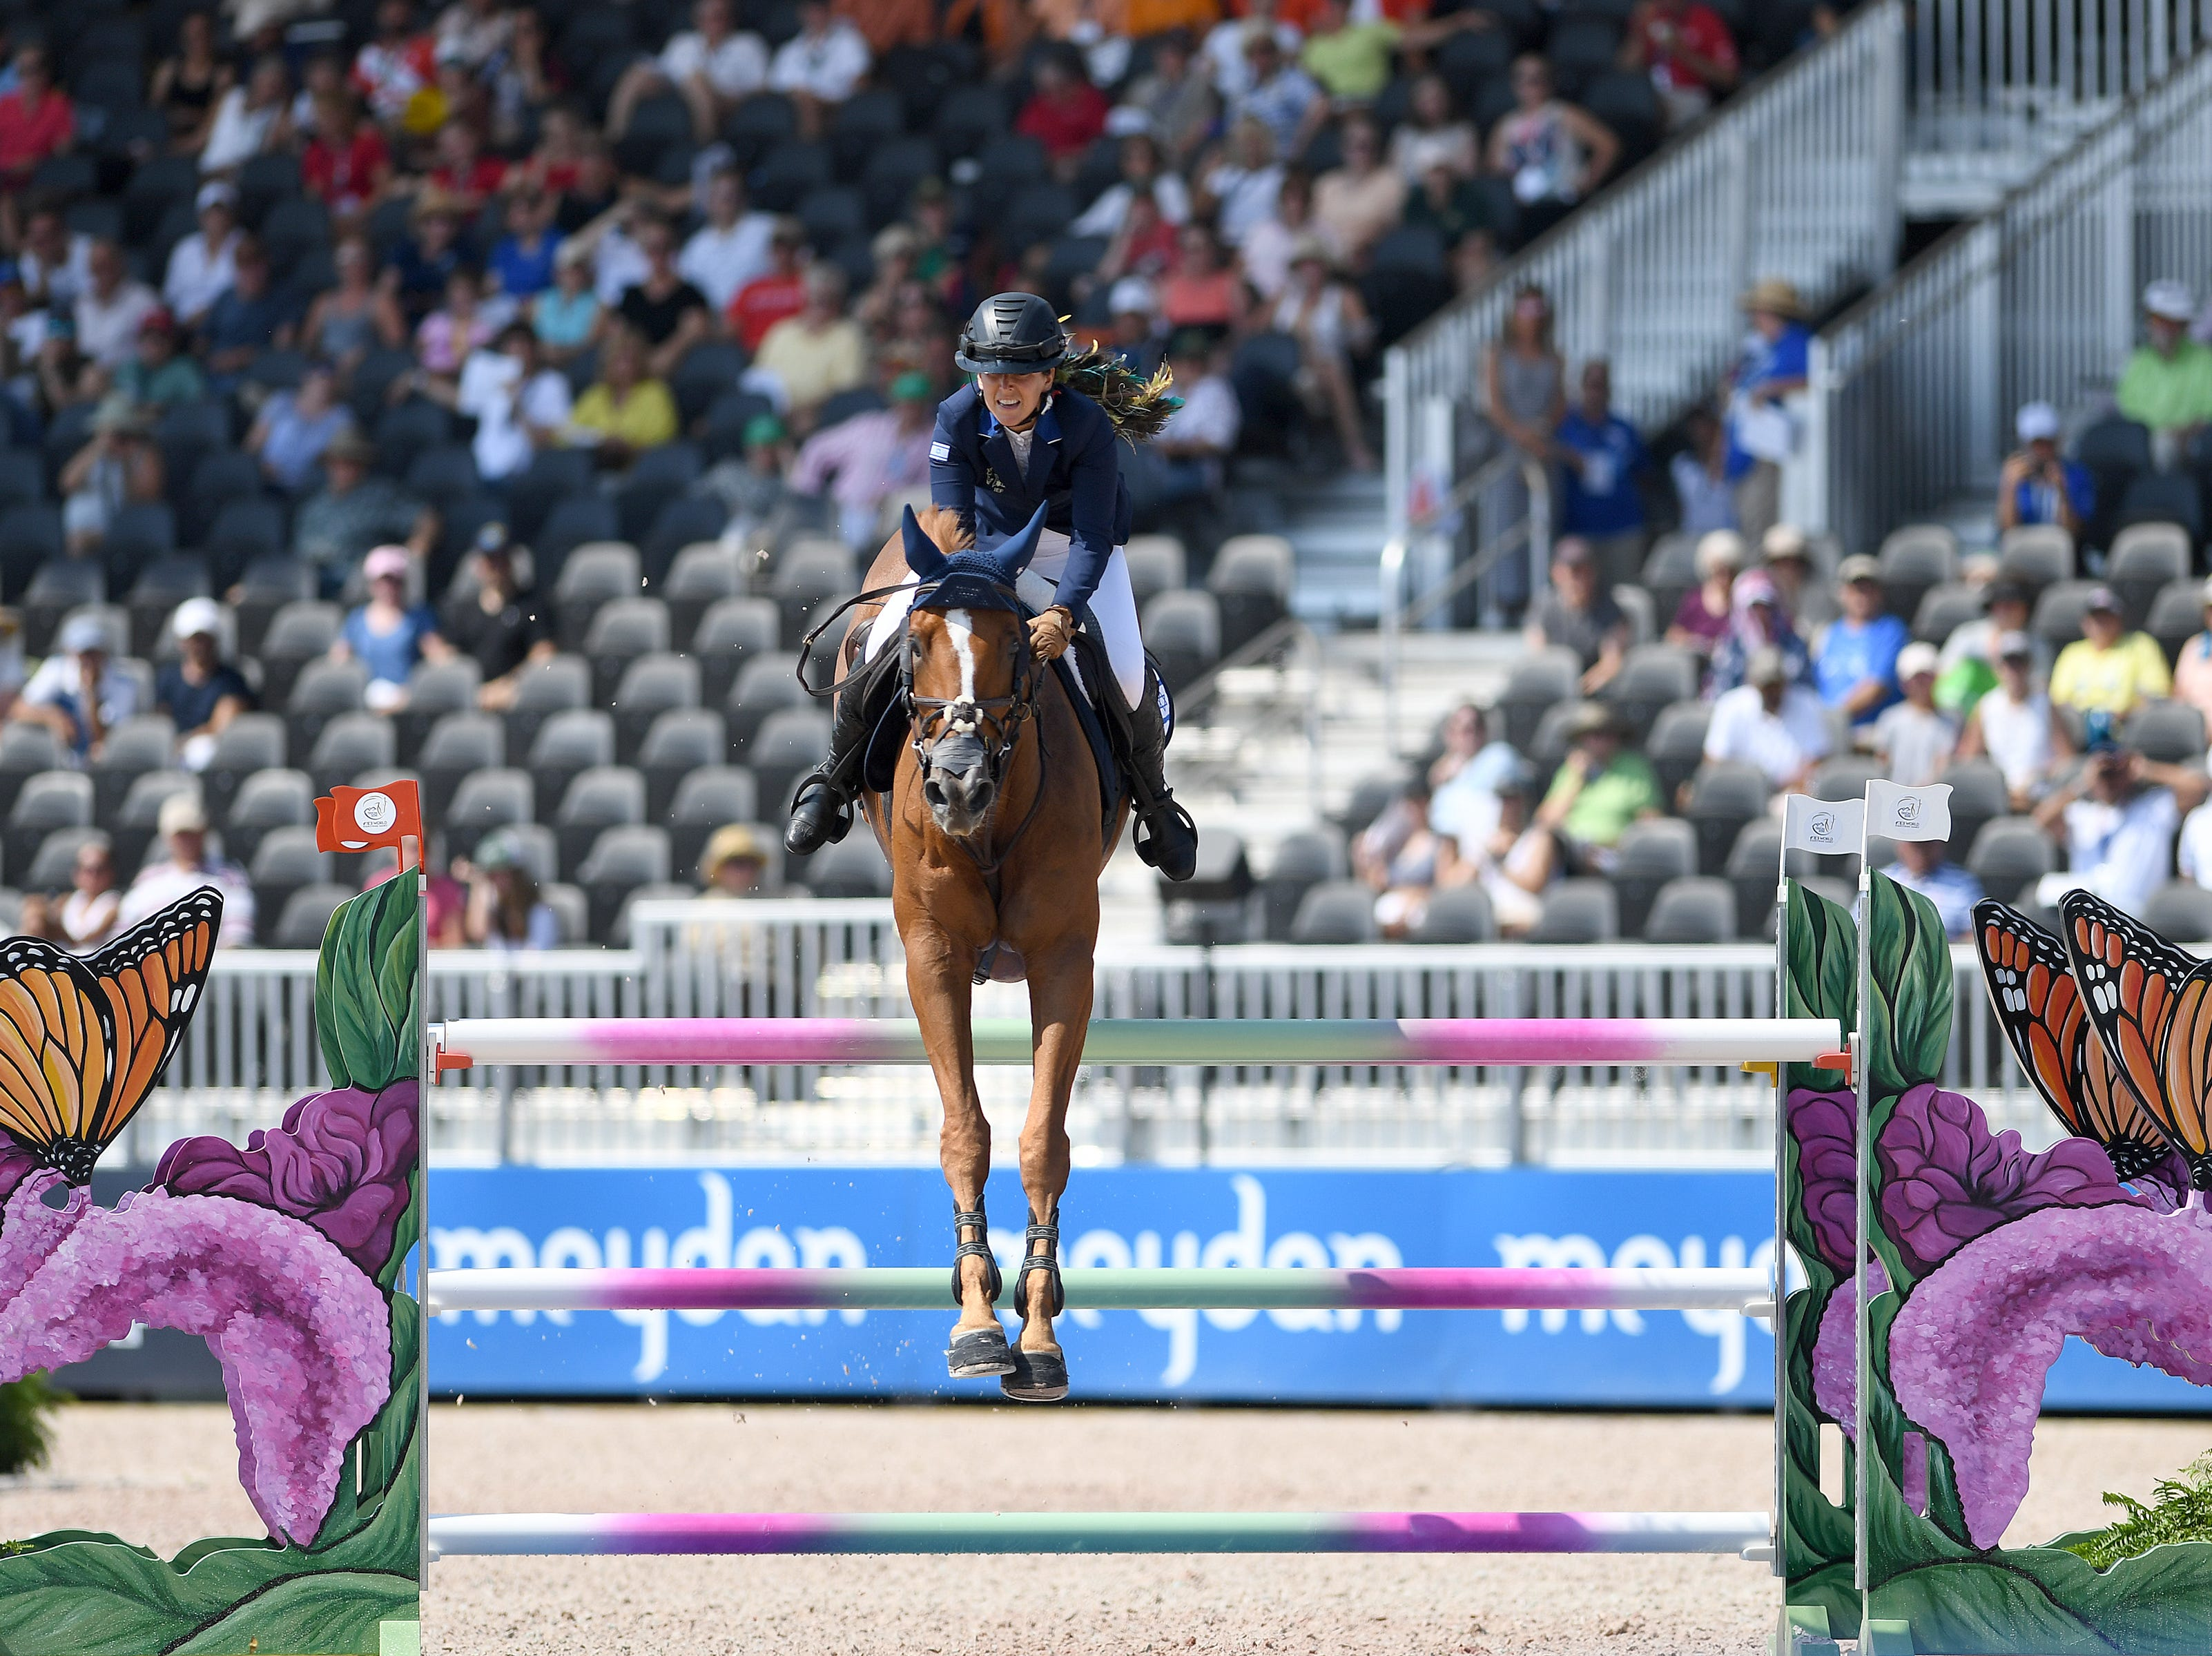 Israel's Danielle Goldstein, on Lizziemary, competes in the team jumping competition of the FEI World Equestrian Games at the Tryon International Equestrian Center on Sept. 20, 2018.